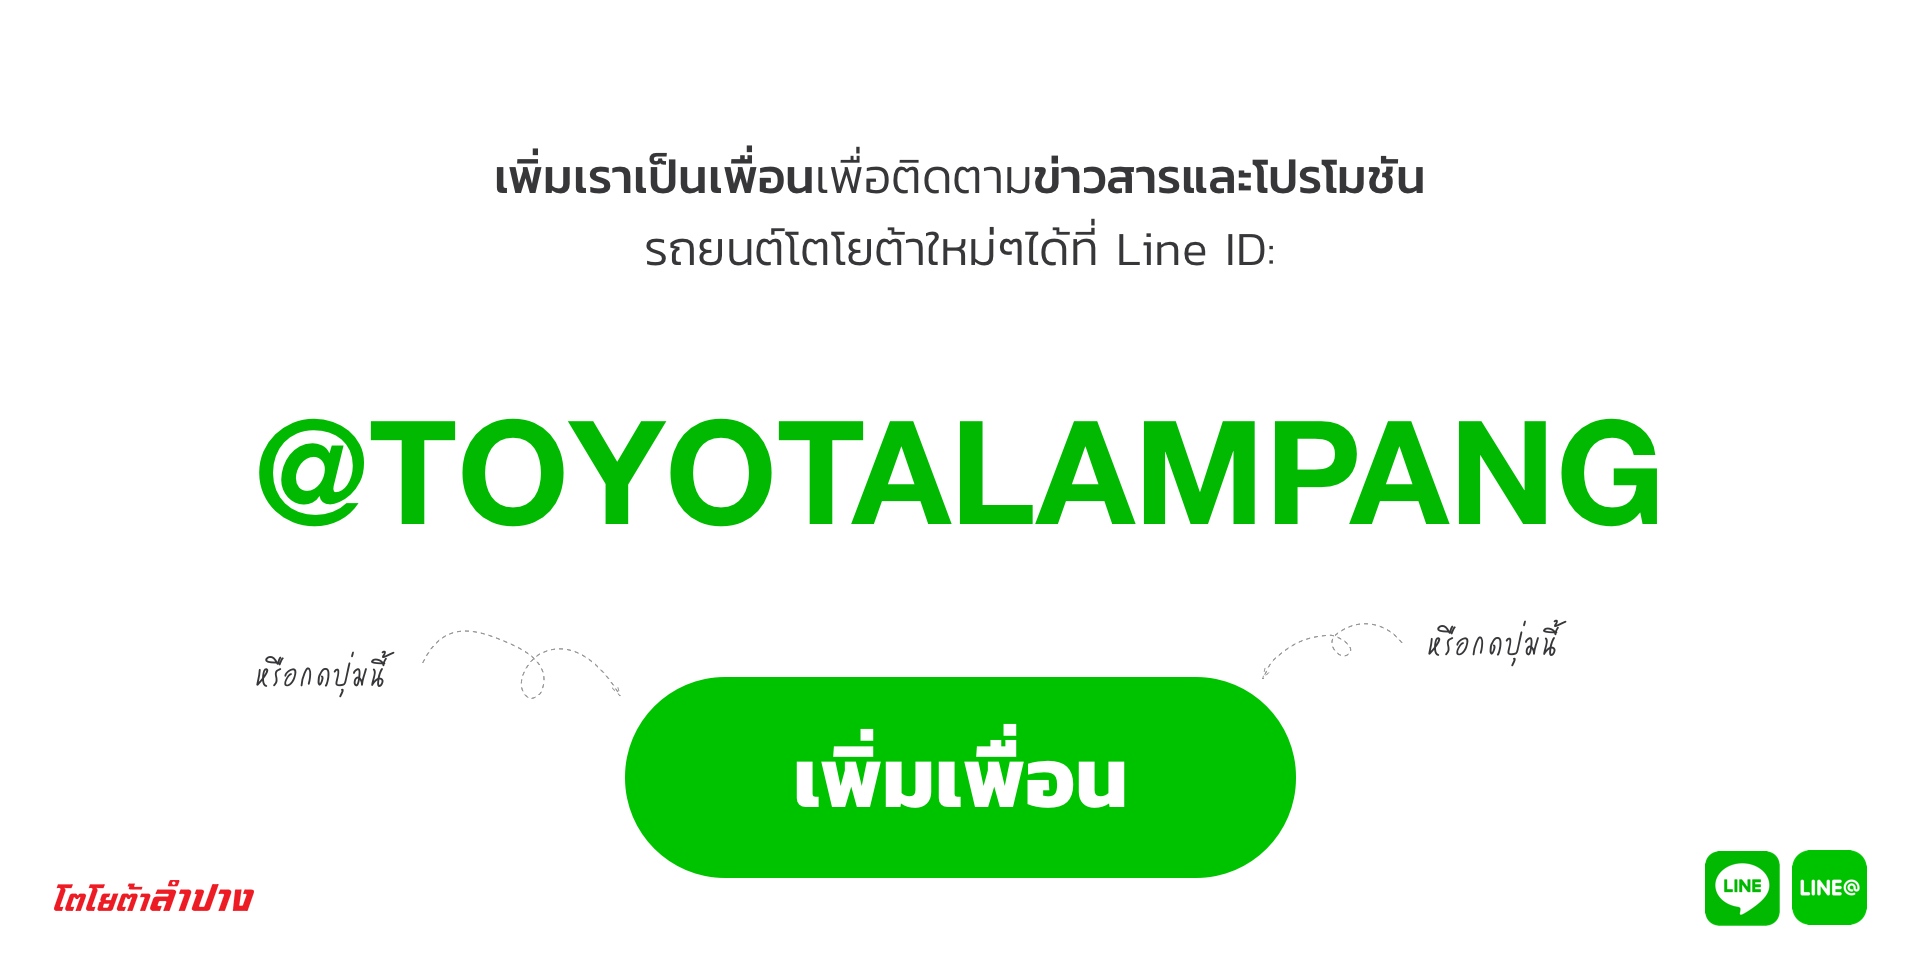 toyotalampang line@